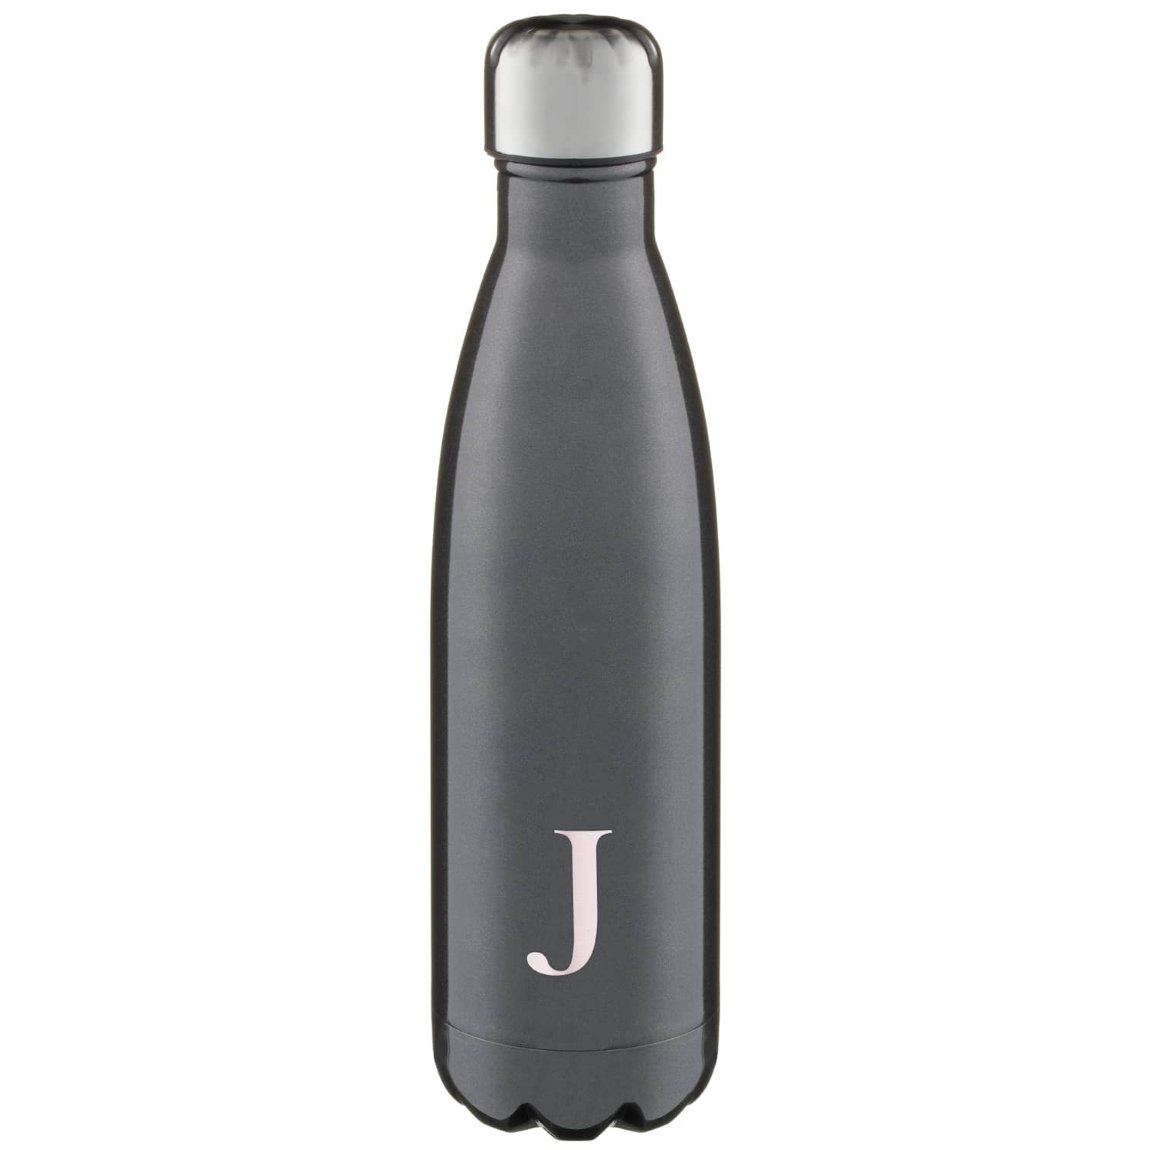 Alphabet Stainless Steel Bottle 500ml